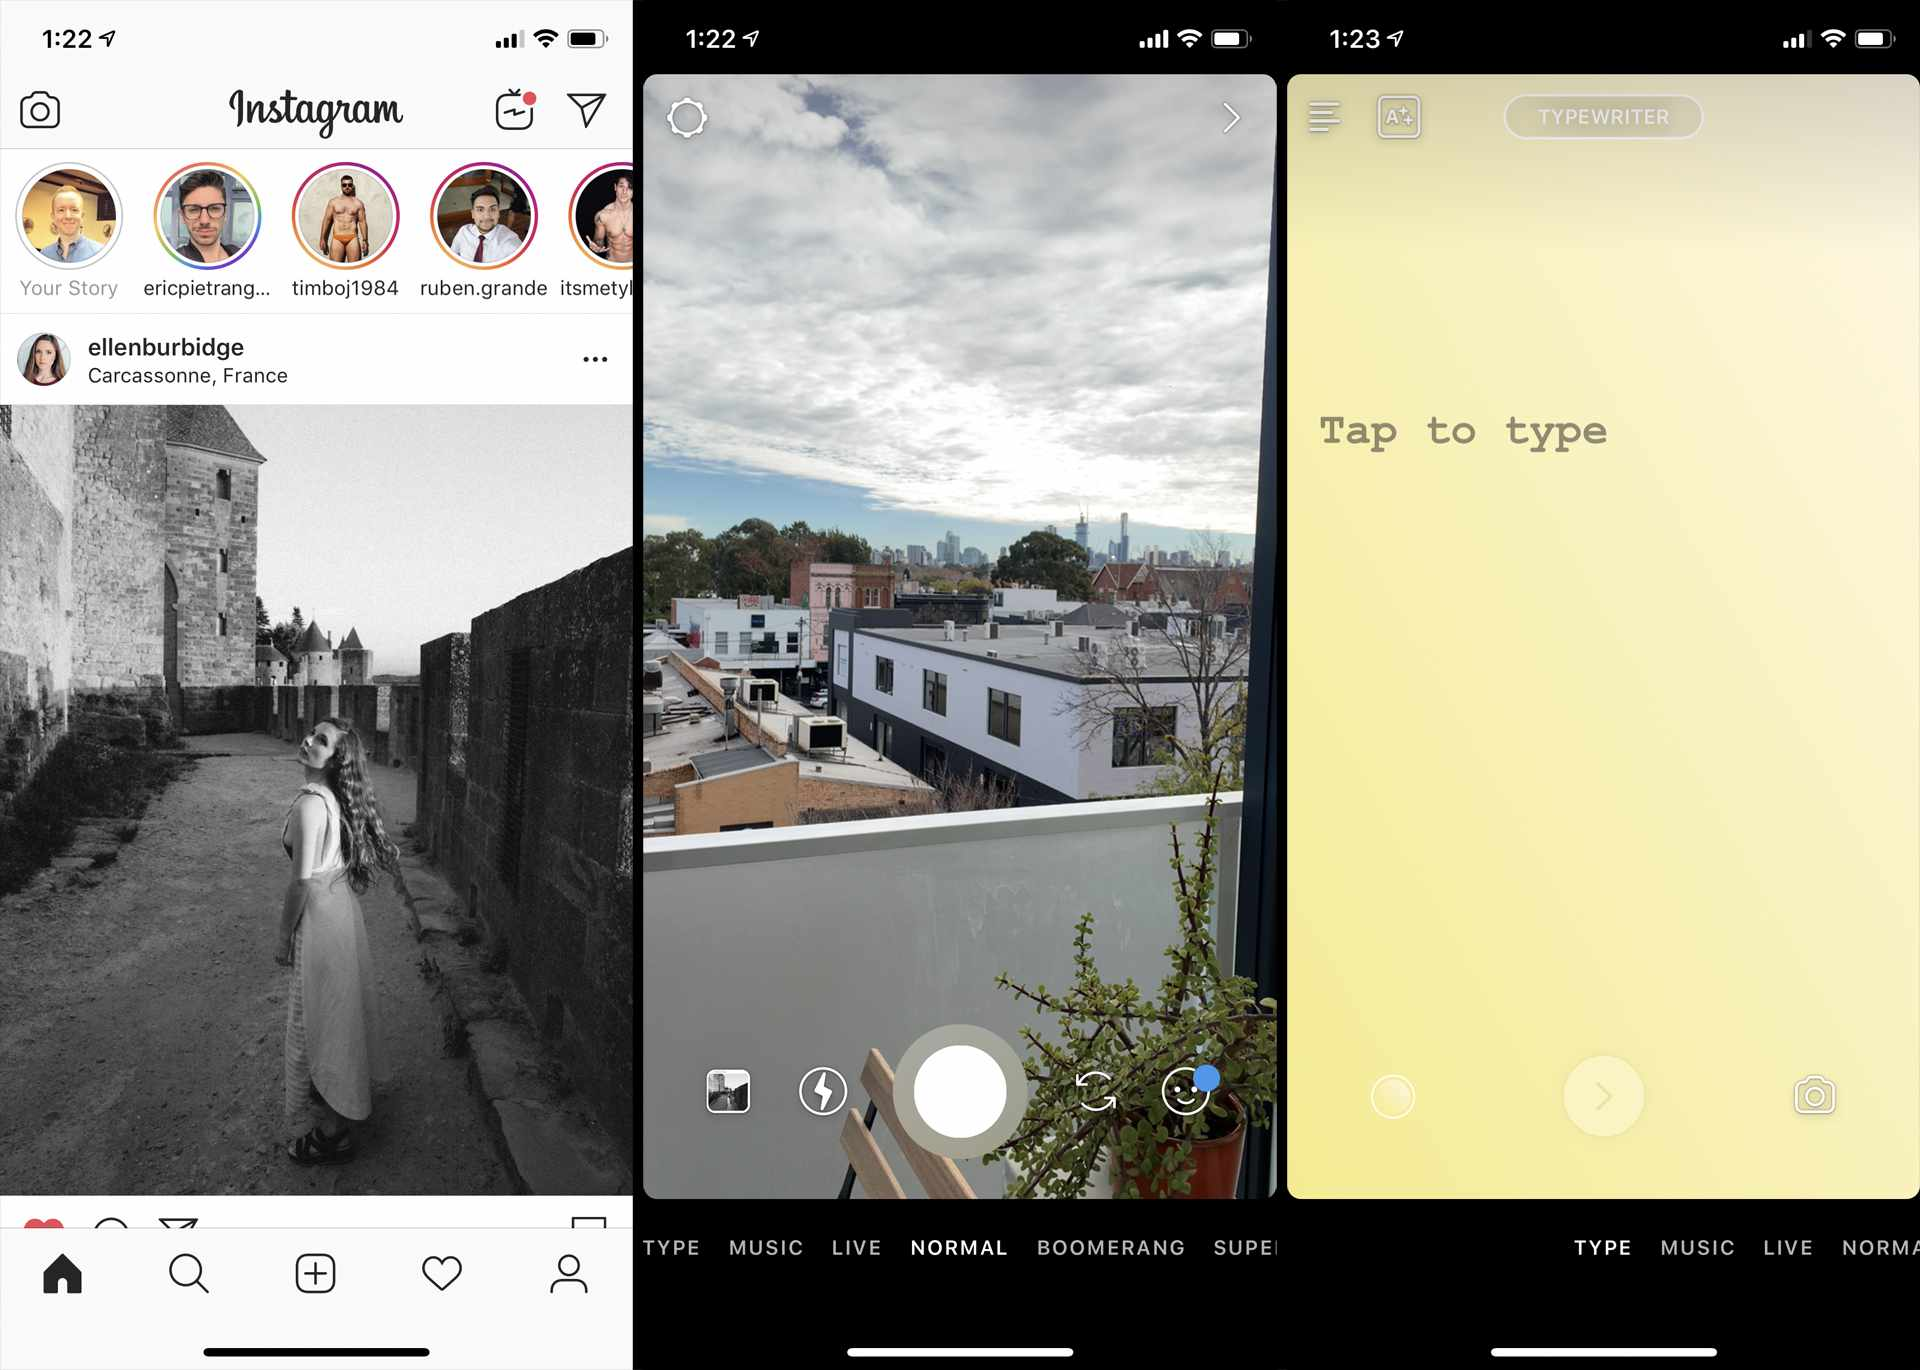 How to Add or Change an Instagram Background